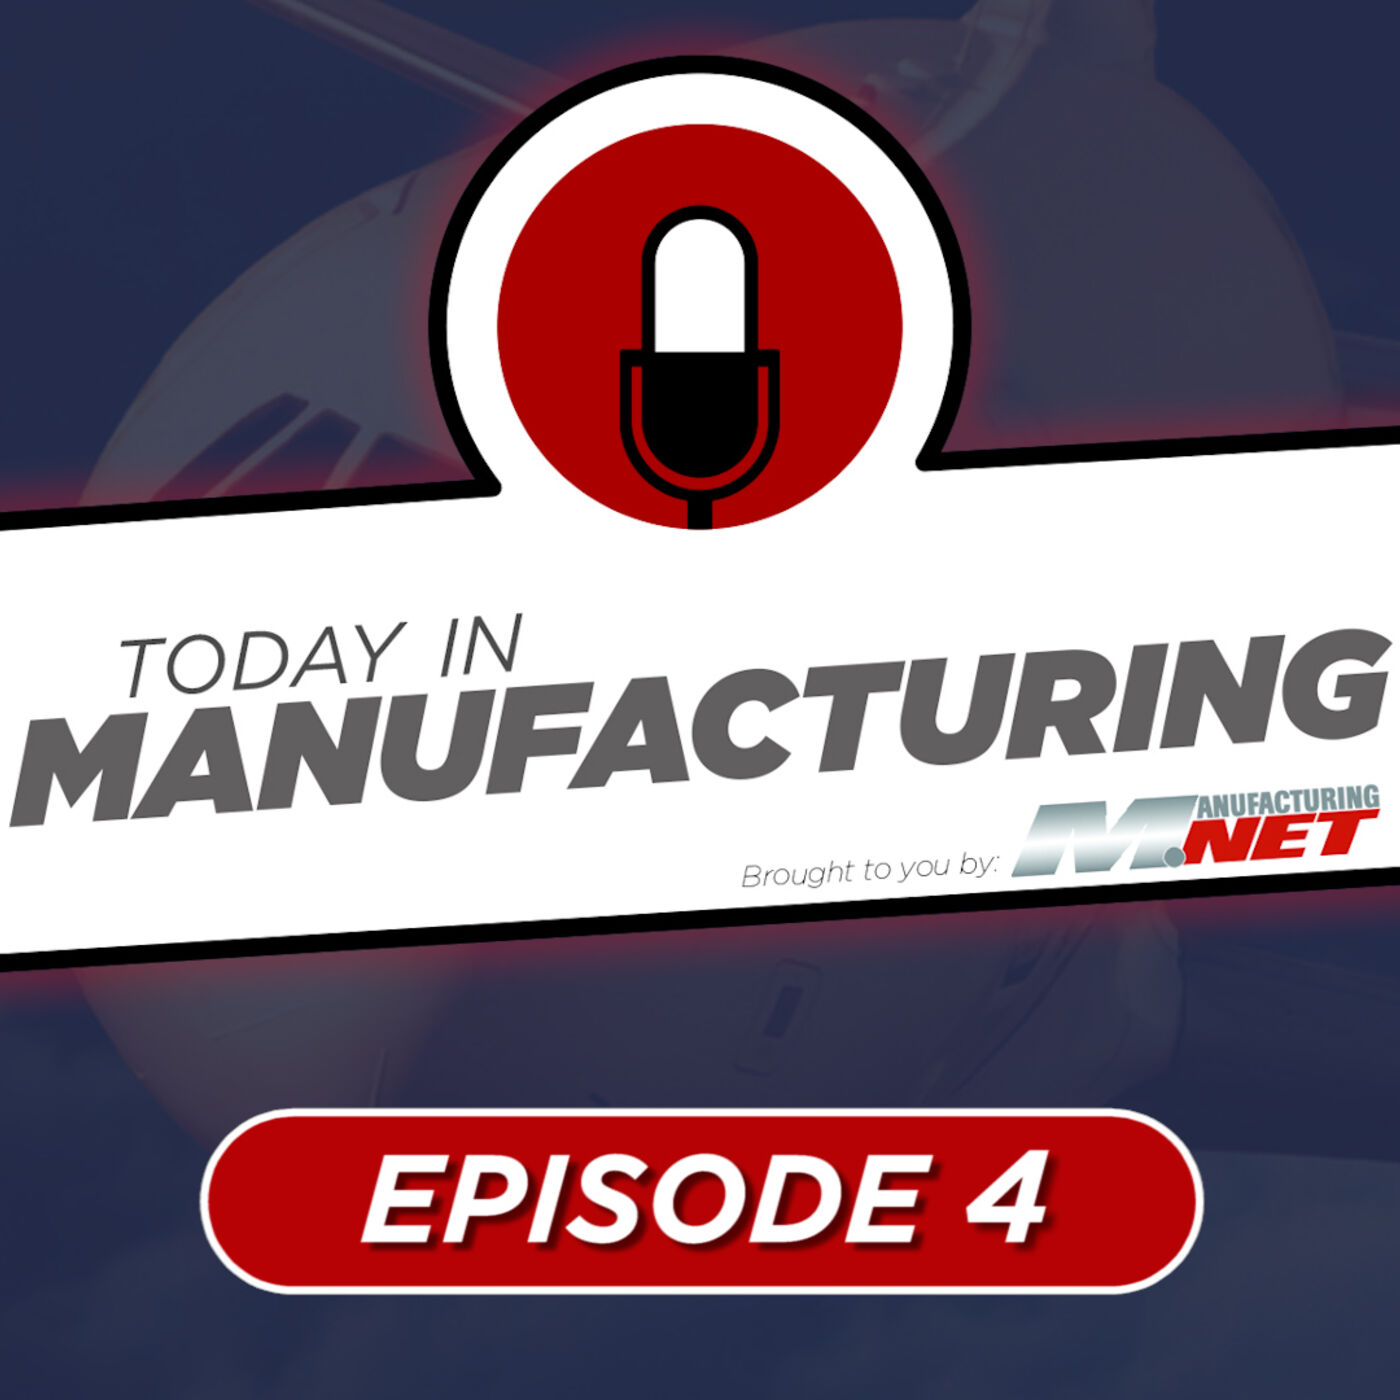 Today in Manufacturing Ep. 4: Boeing's Engine Explosion, Digital Immortality, New Warships, Musk's $15B Tweet & Gunpowder Plant Explosion Update